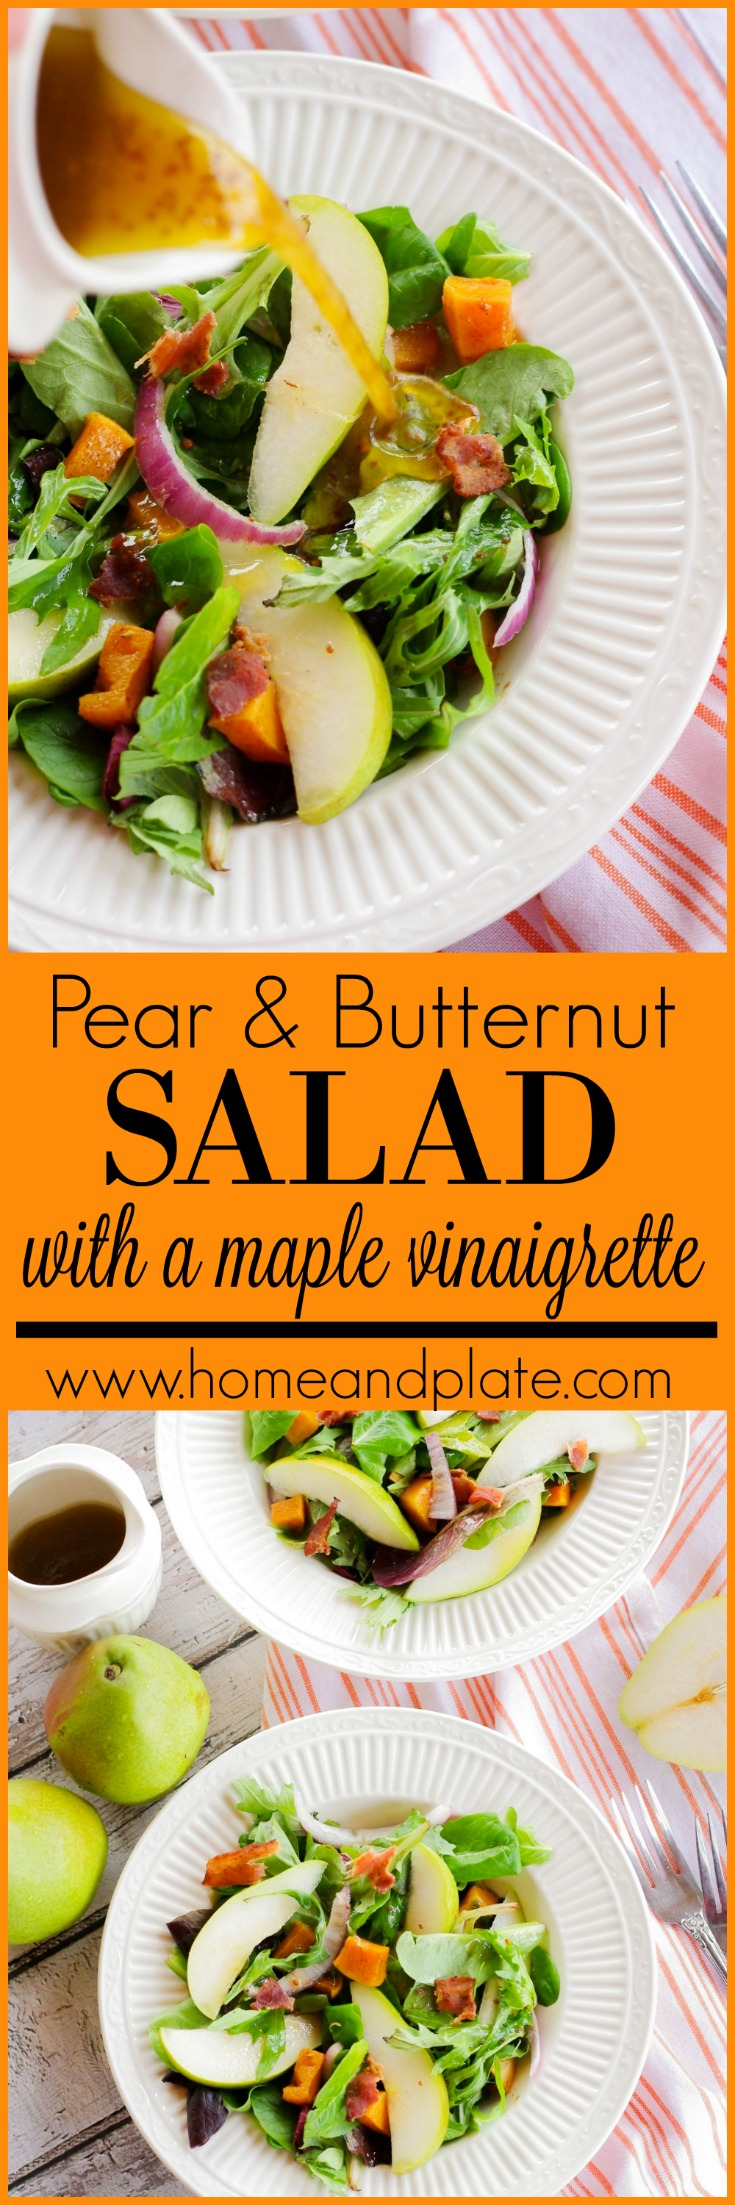 Pear and Butternut Squash Salad with a Maple Balsamic Vinaigrette | www.homeandplate.com |This pear and butternut squash salad is a favorite winter side dish and it's perfect for lunch or any holiday get together.